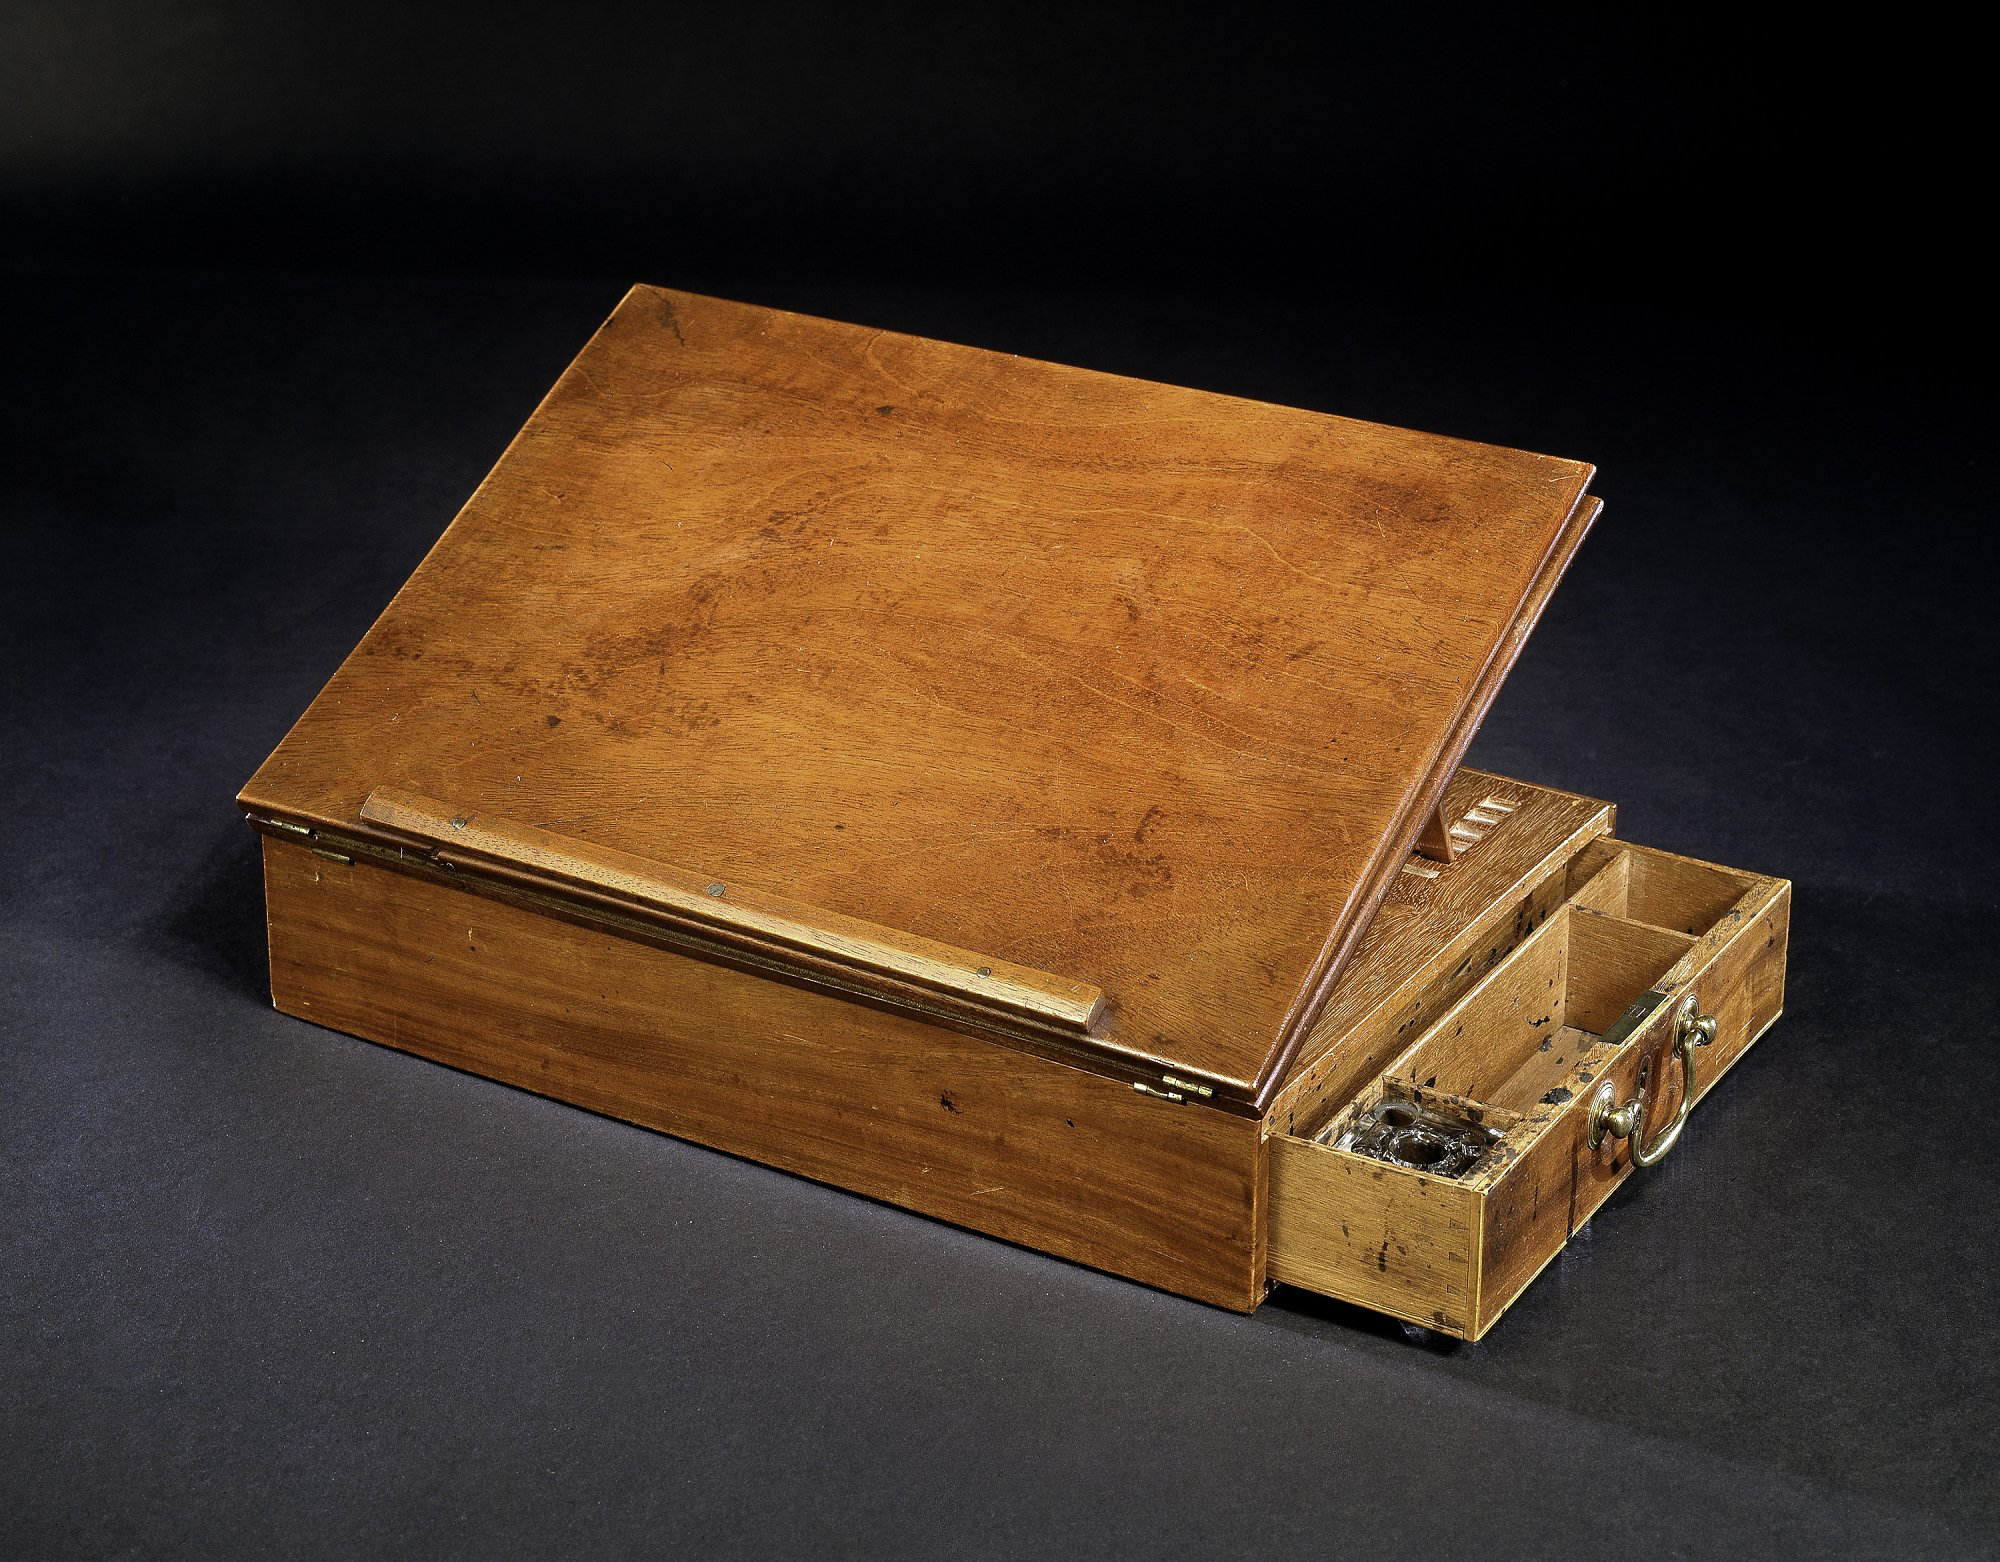 Today in 1743: Thomas Jefferson is born in Virginia. The desk on which he wrote the Declaration of Independence: ow.ly/oZ7R30aOEKb